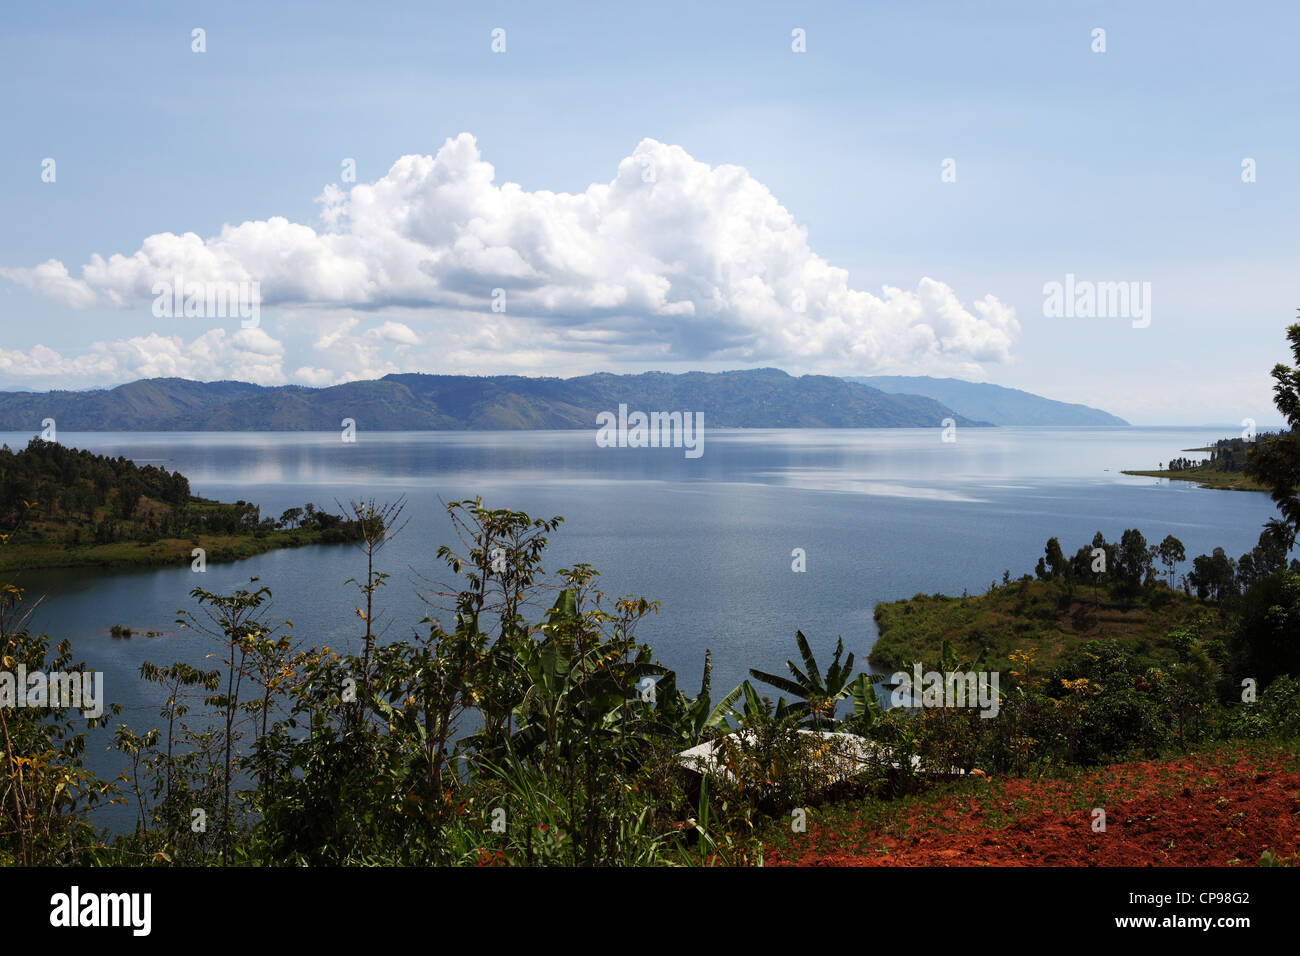 A long white cloud hands over the placid surface of Lake Kivu in Rwanda. - Stock Image